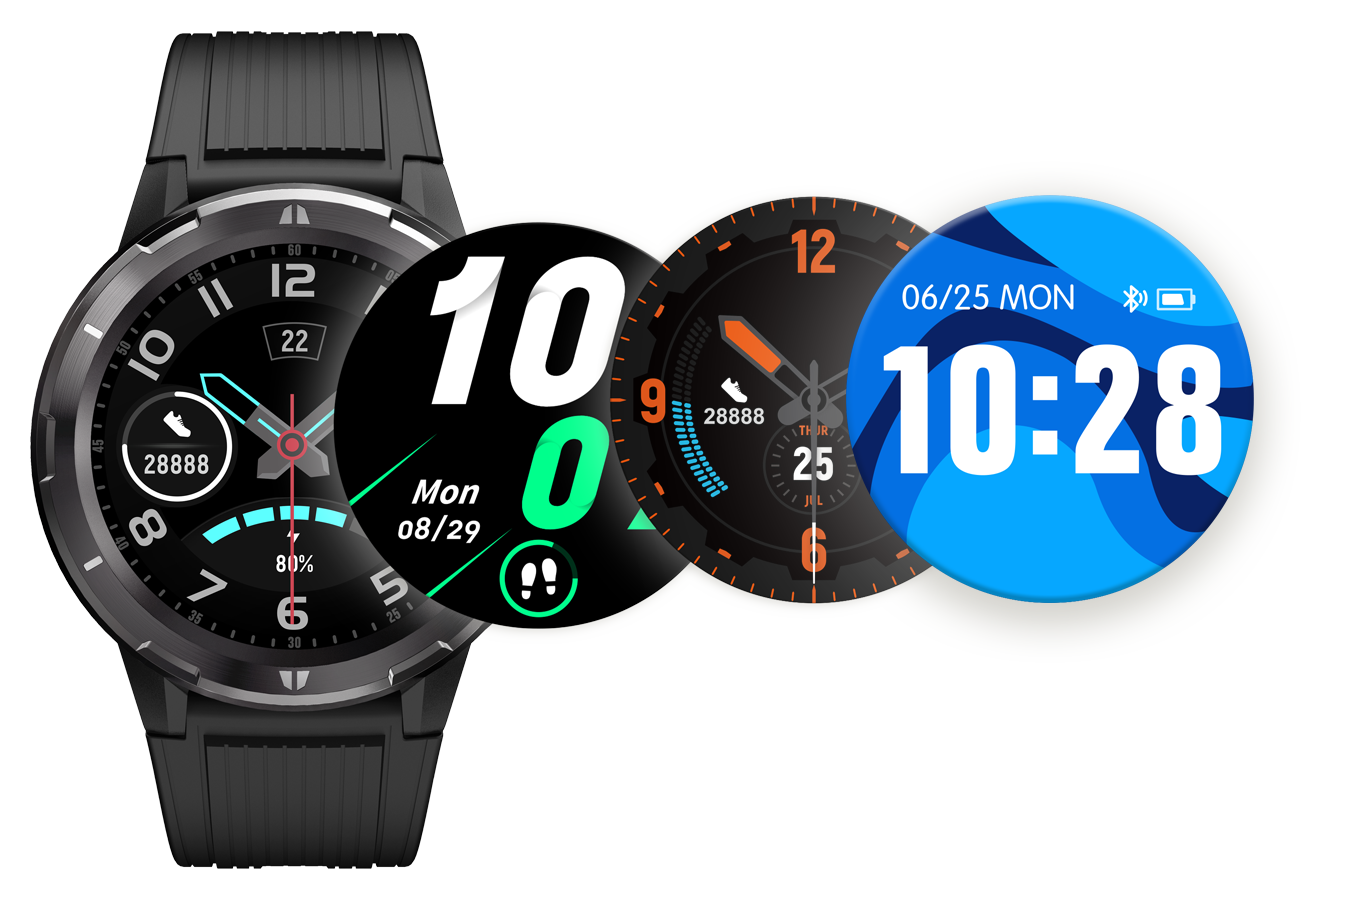 SW-350 WATCH FACES.png